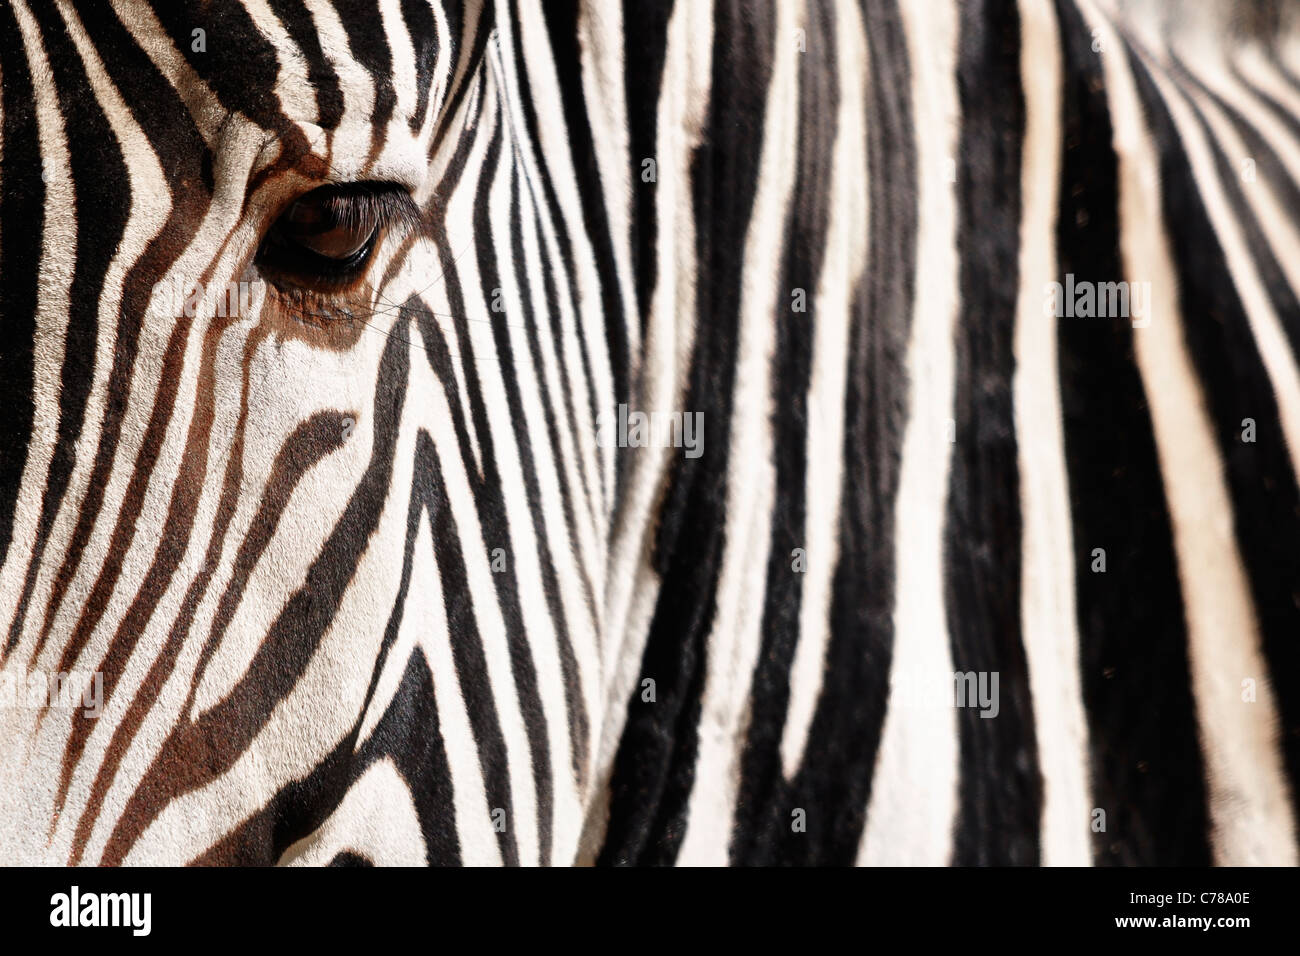 Detail of a Zebra, with low depth of field and focus on the eye - Stock Image